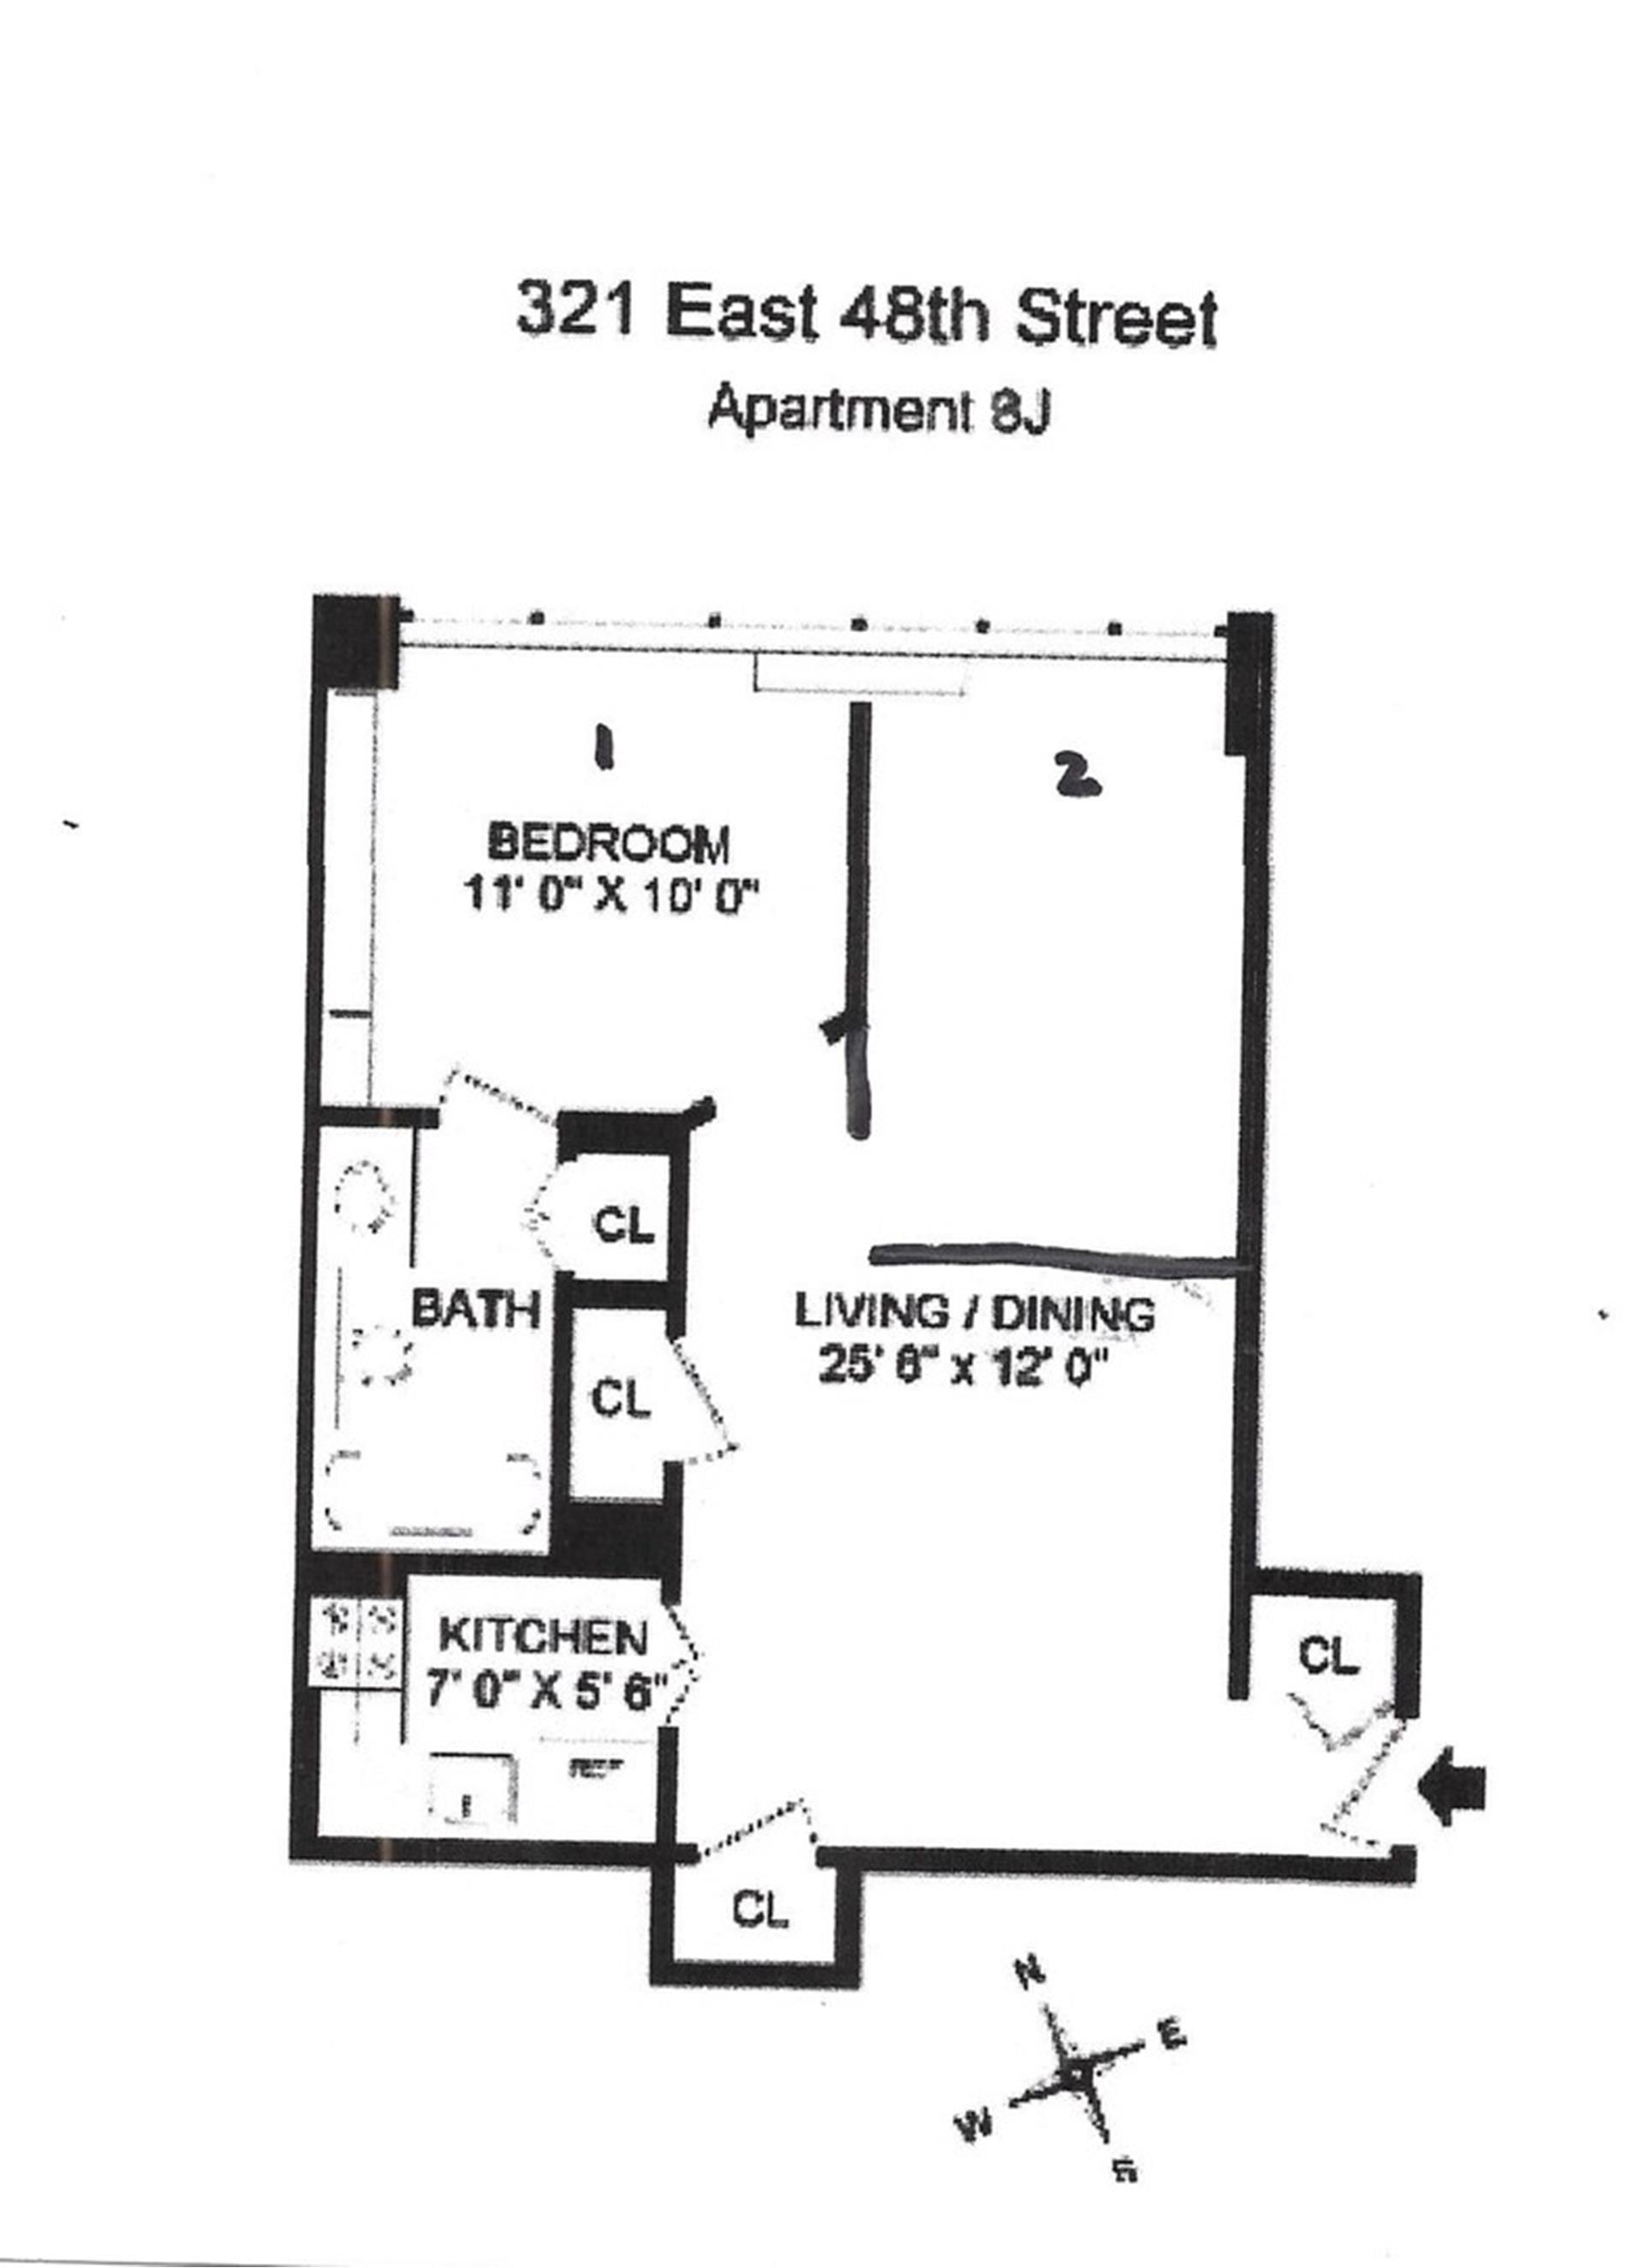 Floor plan of Continental Condo, 321 East 48th St, 8J - Turtle Bay, New York